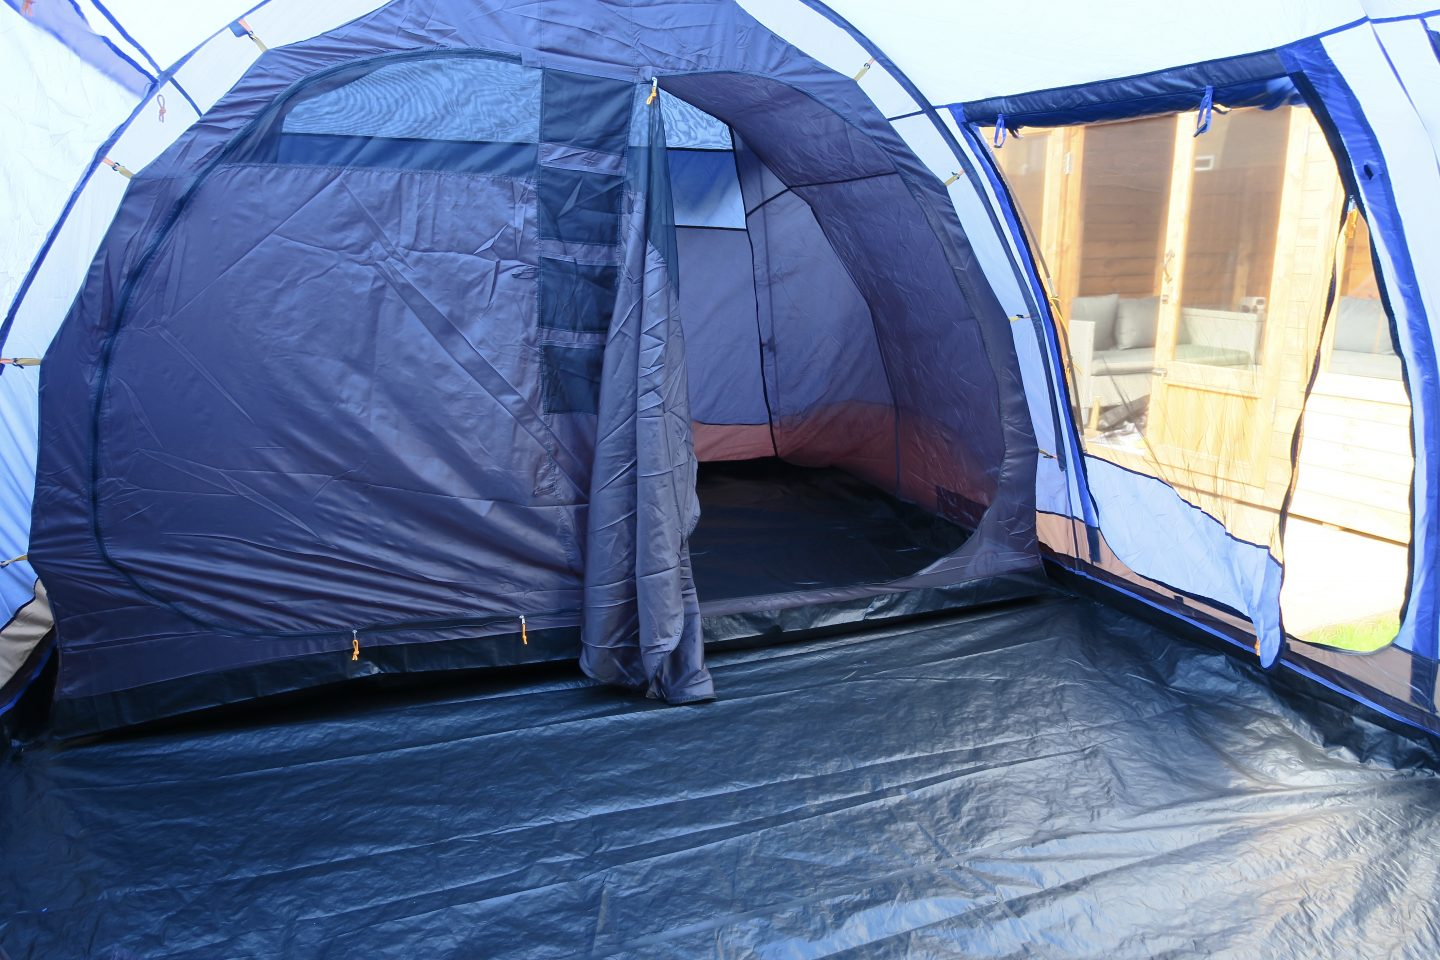 The inside of a blue tent showing a separate sleeping compartment